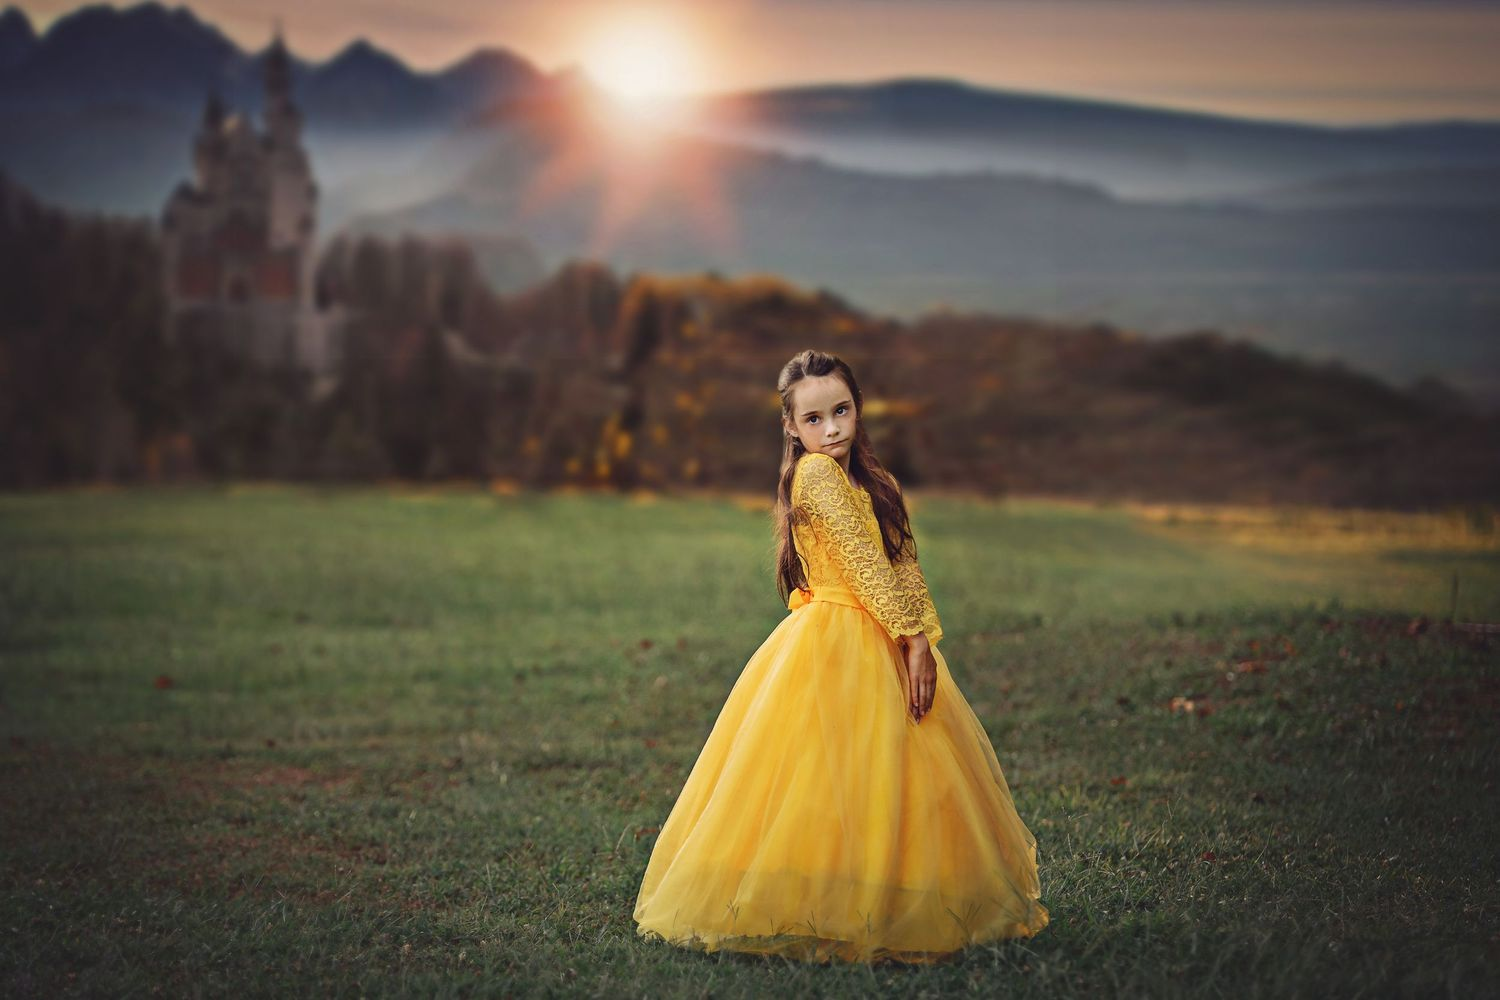 golden beauty castle imagination photography mc